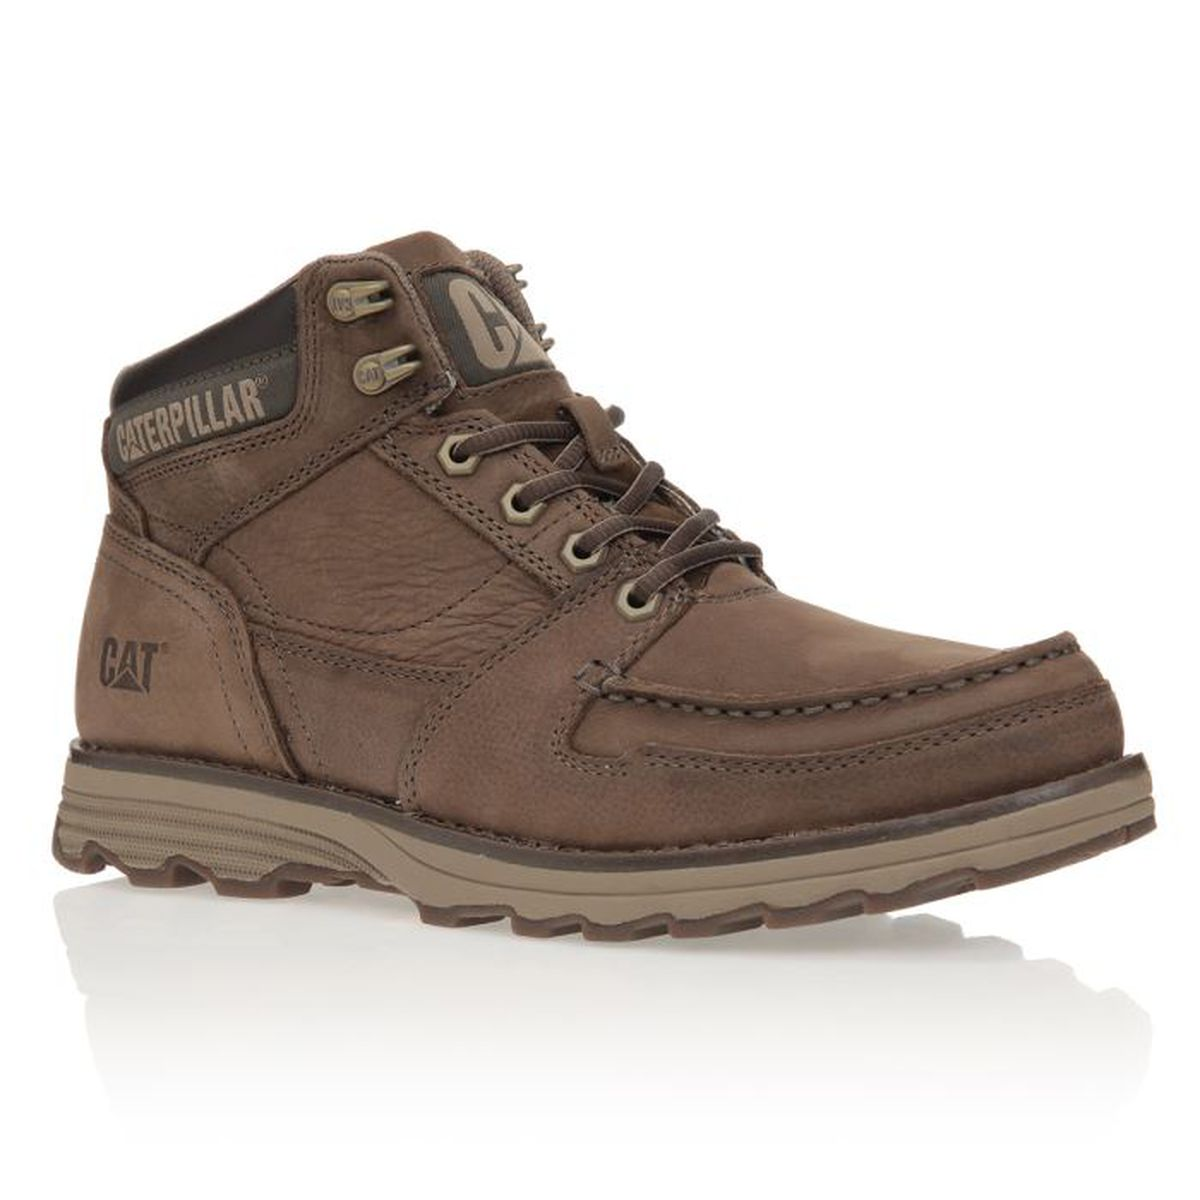 caterpillar bottines receptive chaussures homme homme marron achat vente caterpillar bottines. Black Bedroom Furniture Sets. Home Design Ideas